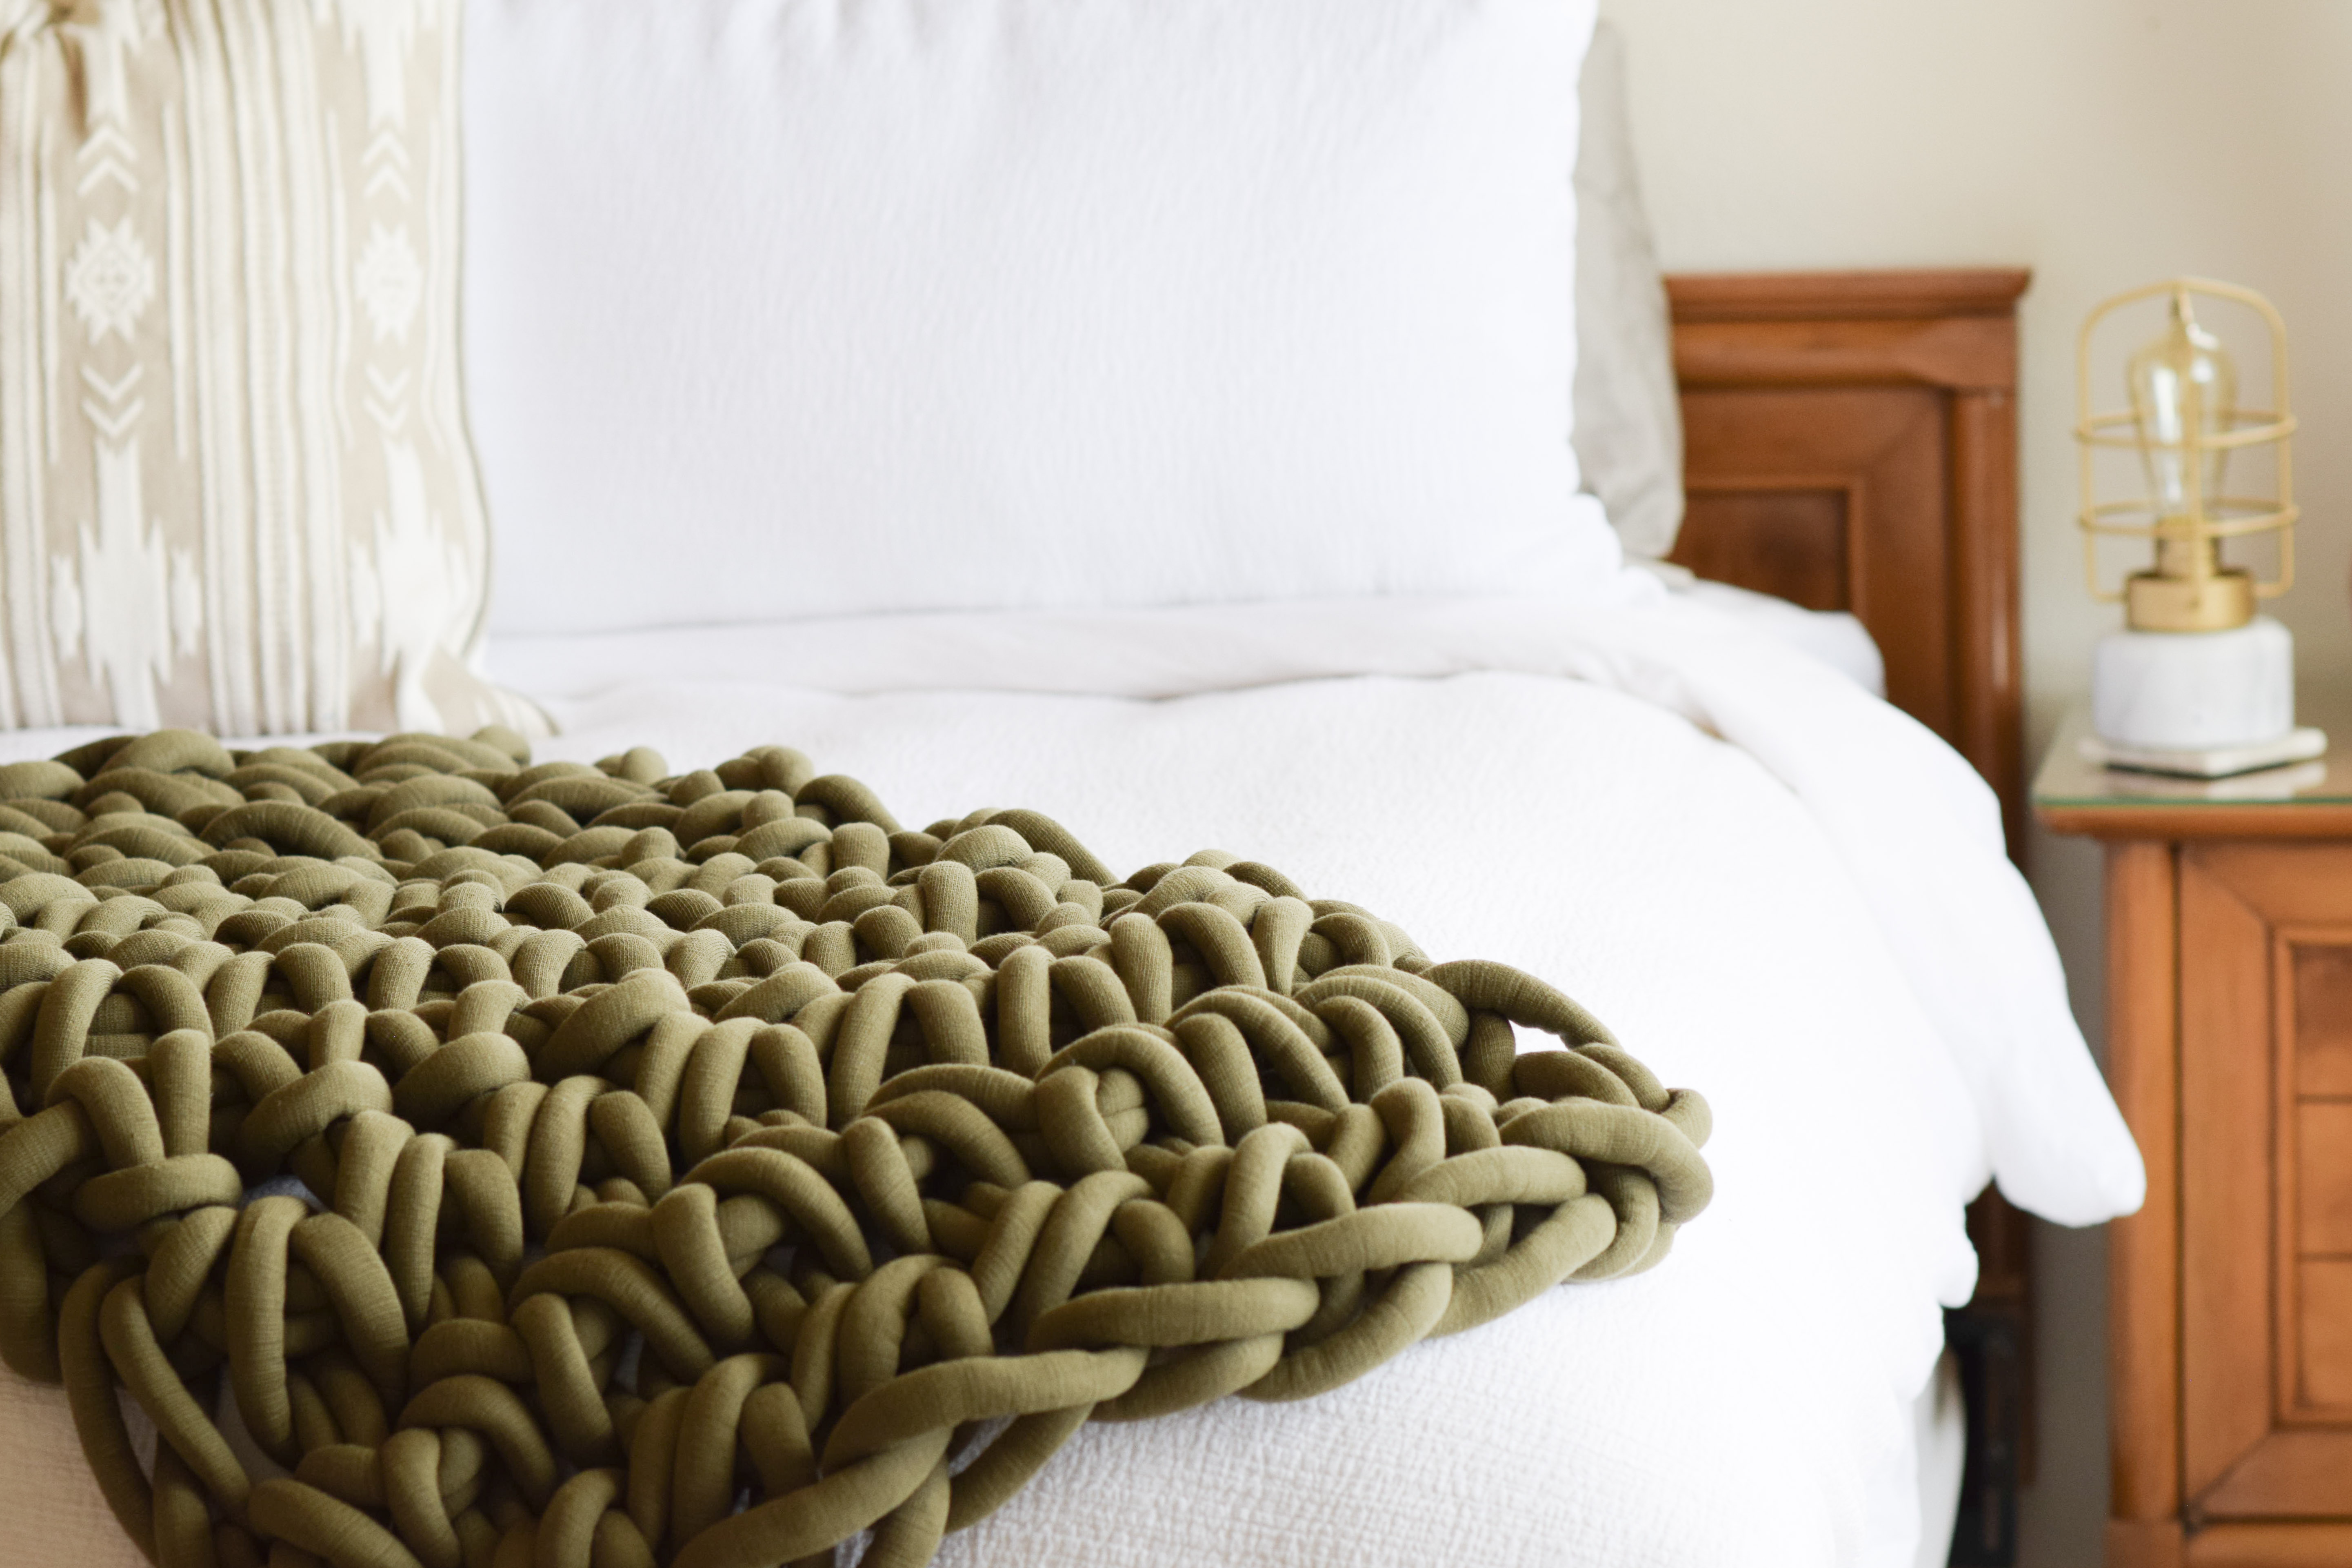 Hand Crocheted Big Blanket How To 2